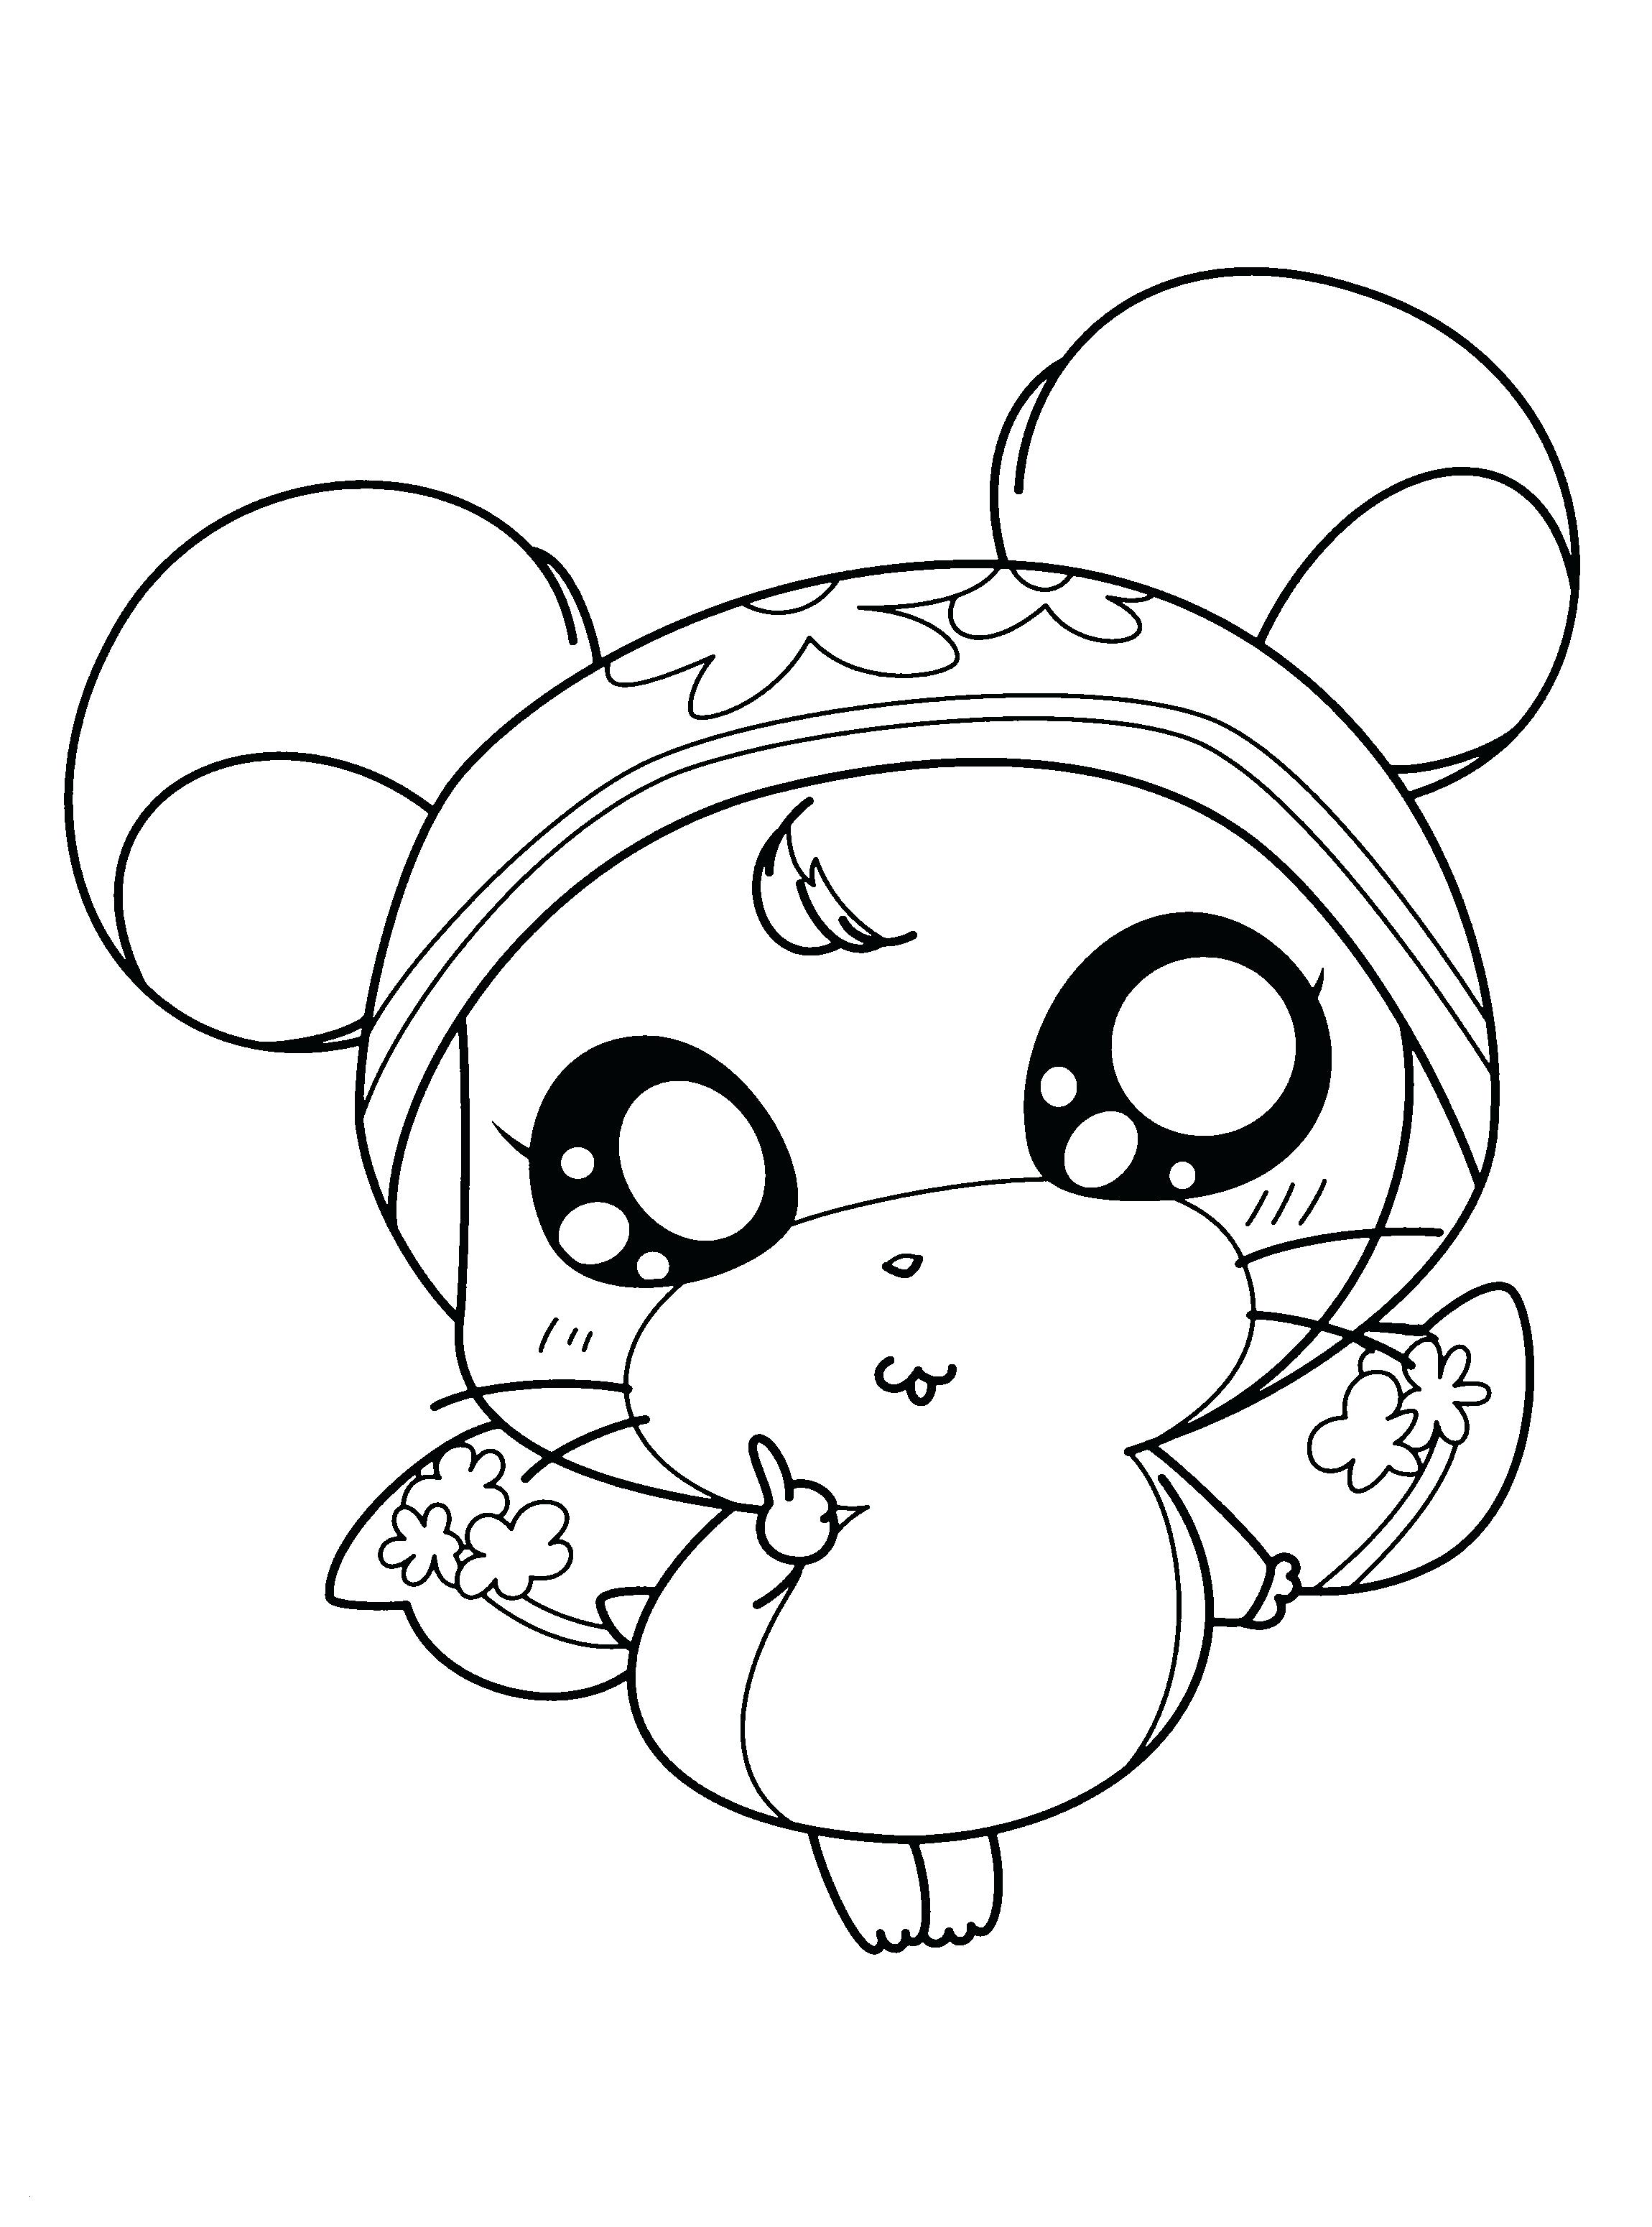 Amazing World Of Gumball Coloring Pages - GetColoringPages.com | 3100x2300